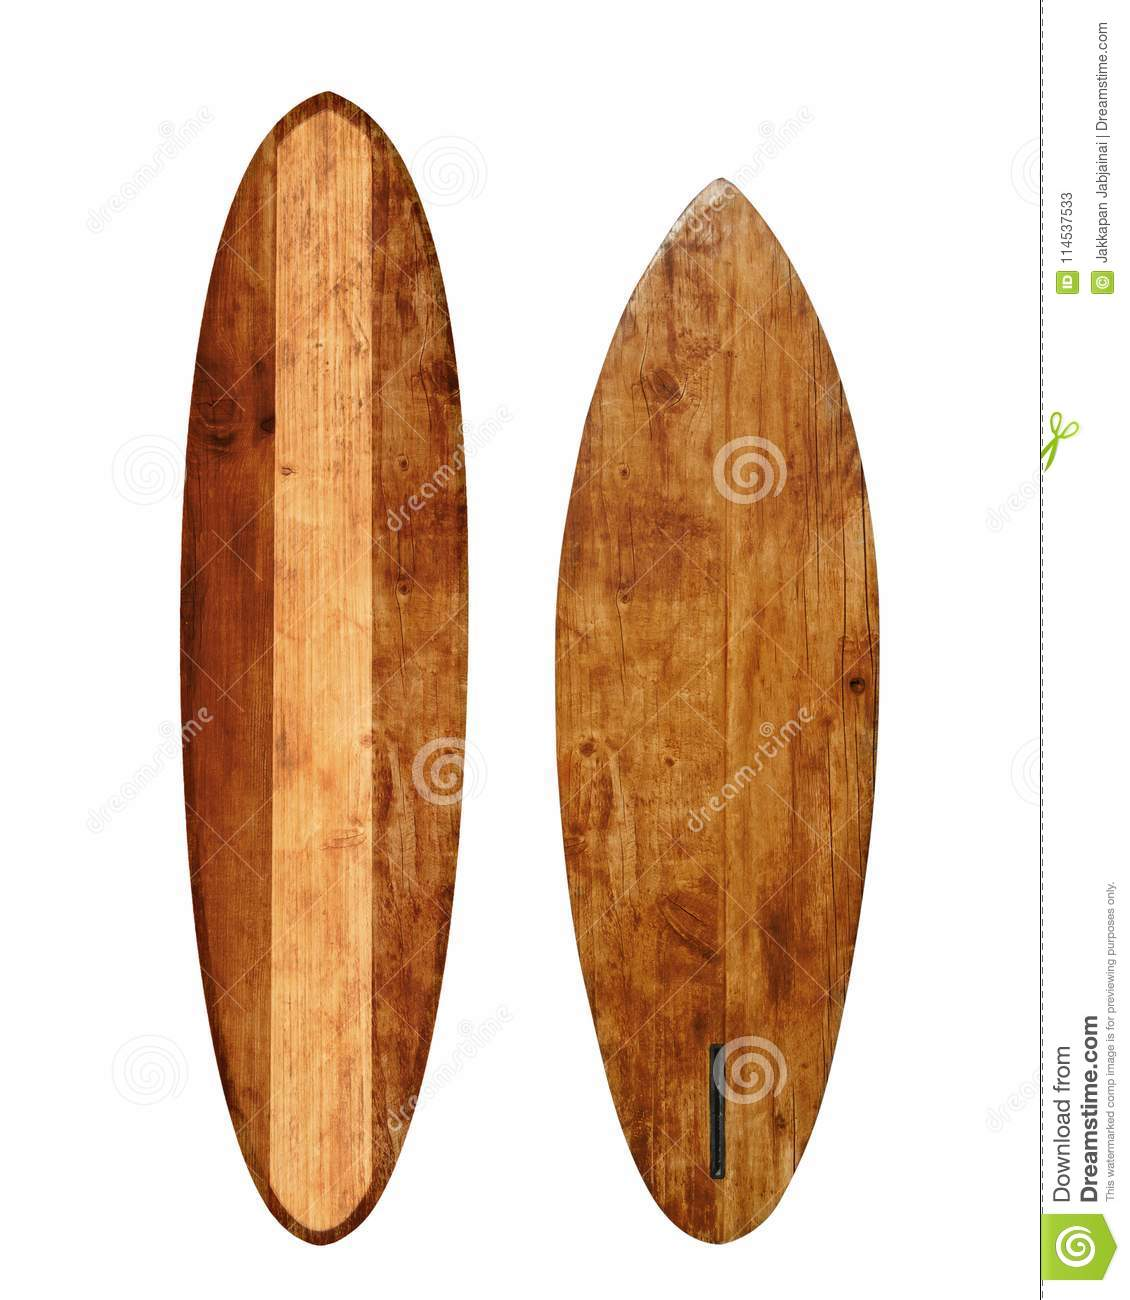 Deco Planche De Surf vintage wood surfboard isolated on white stock image - image